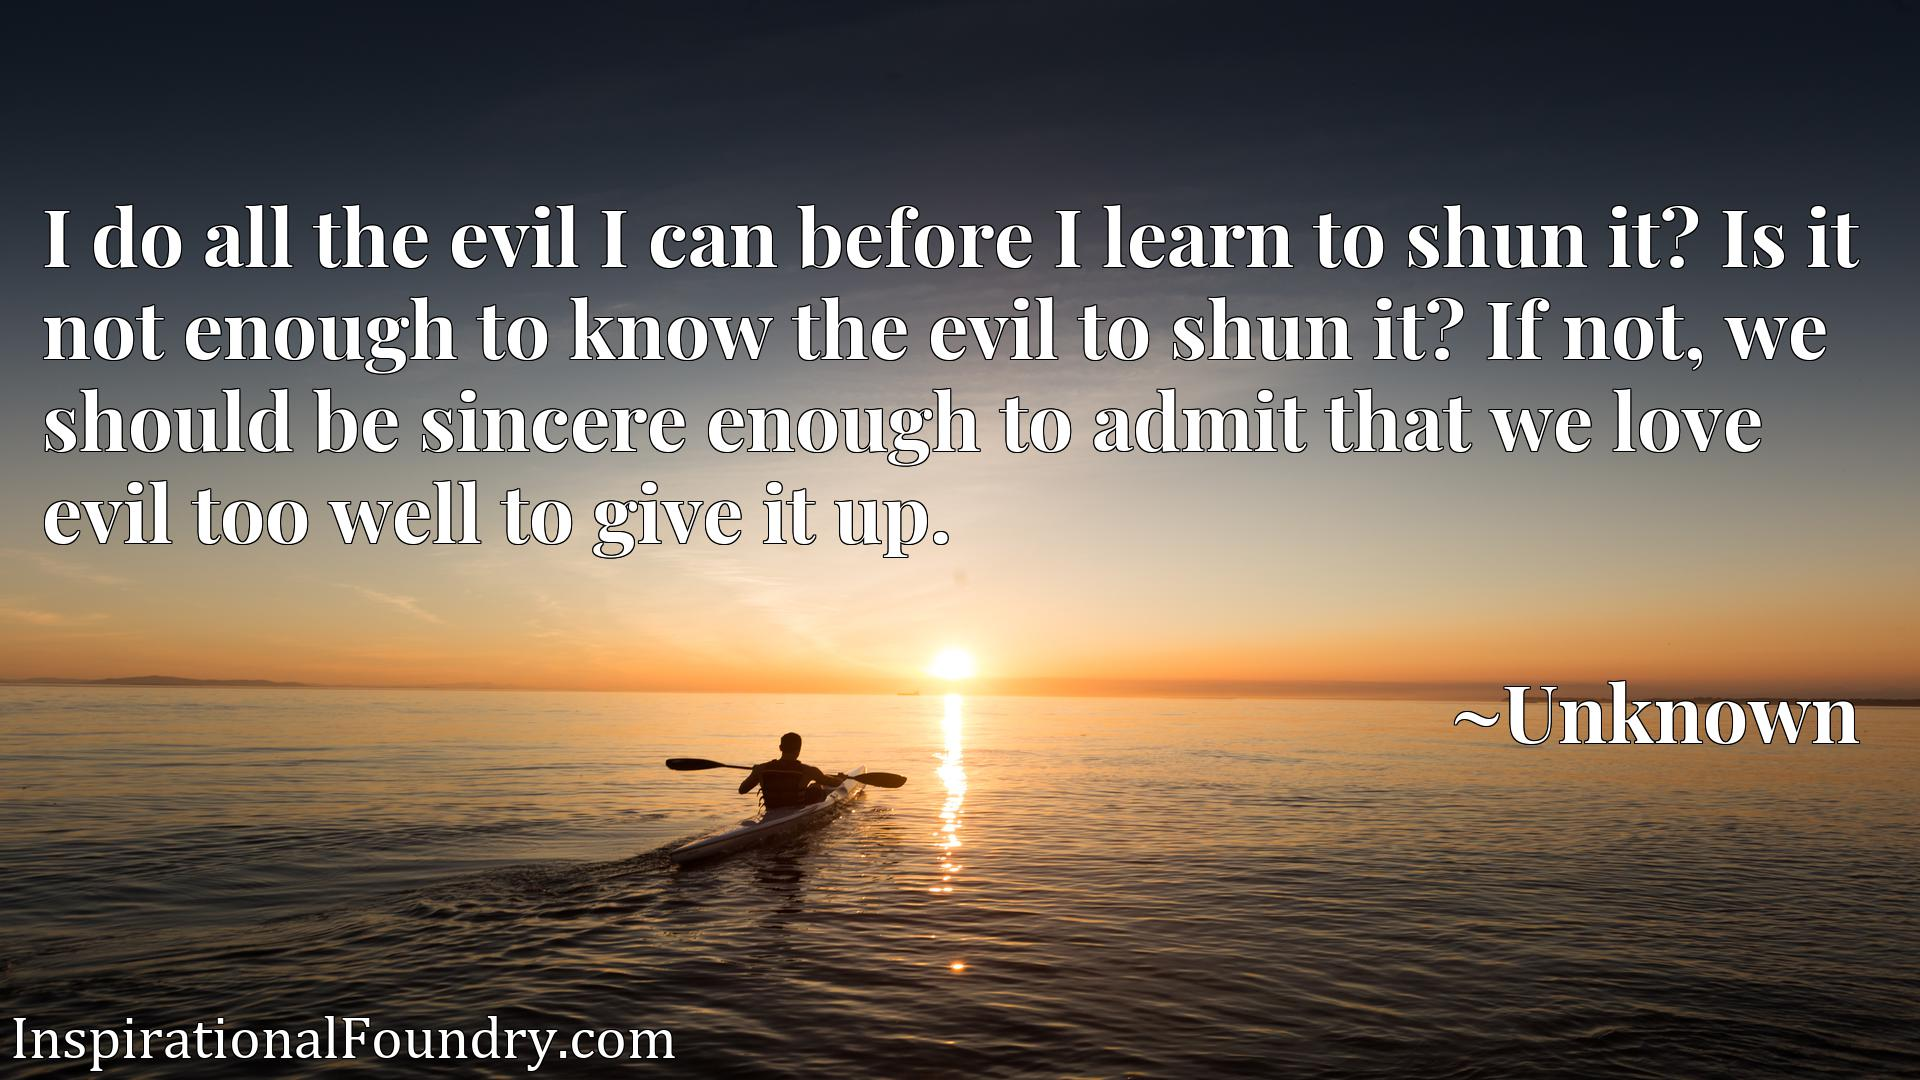 I do all the evil I can before I learn to shun it? Is it not enough to know the evil to shun it? If not, we should be sincere enough to admit that we love evil too well to give it up.